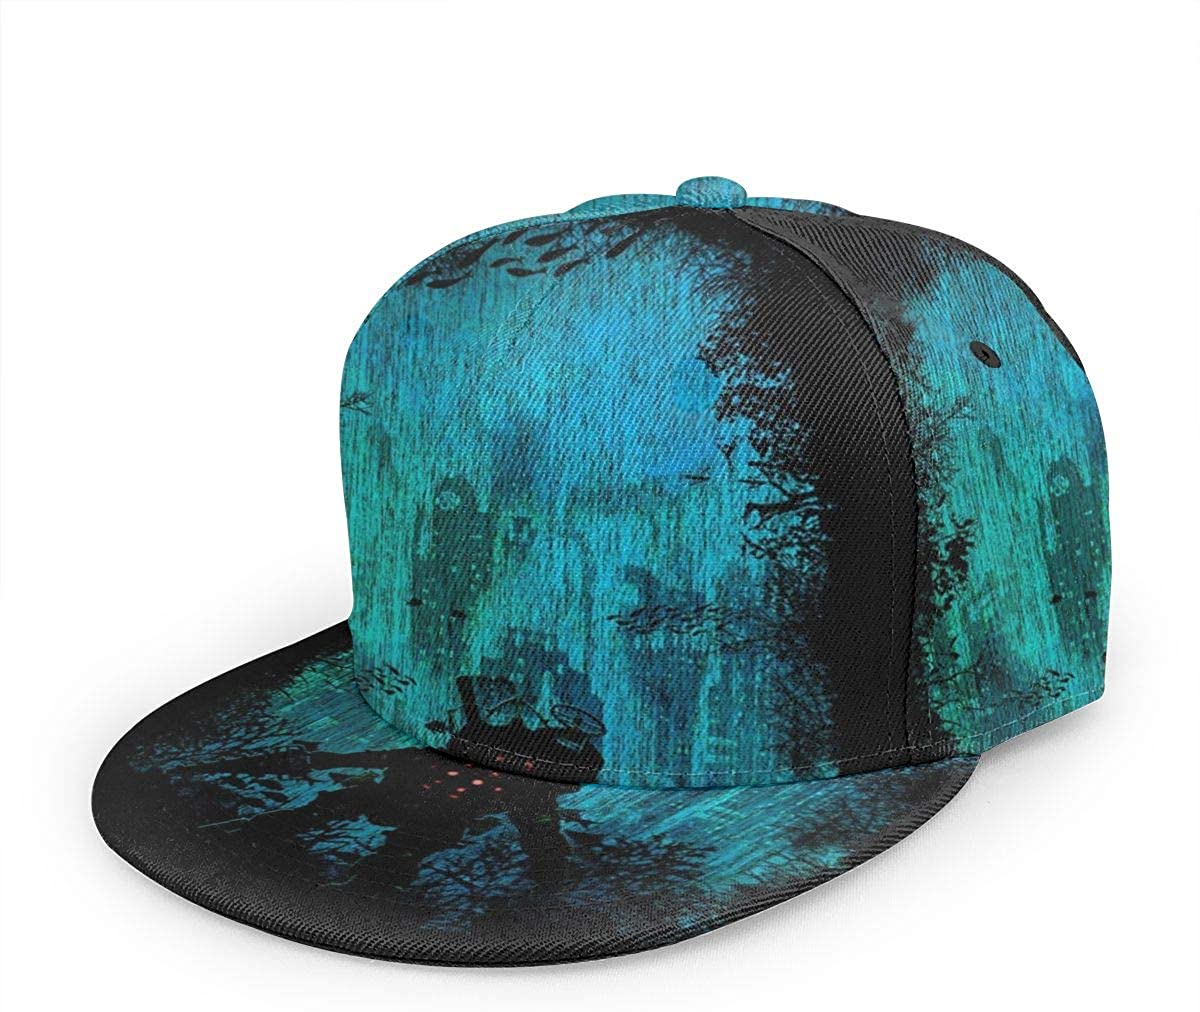 1003 Bioshock Big Daddy Discovering Rapture -Unisex Baseball Cap Printed Fashion Sport Pop Baseball Cap Black